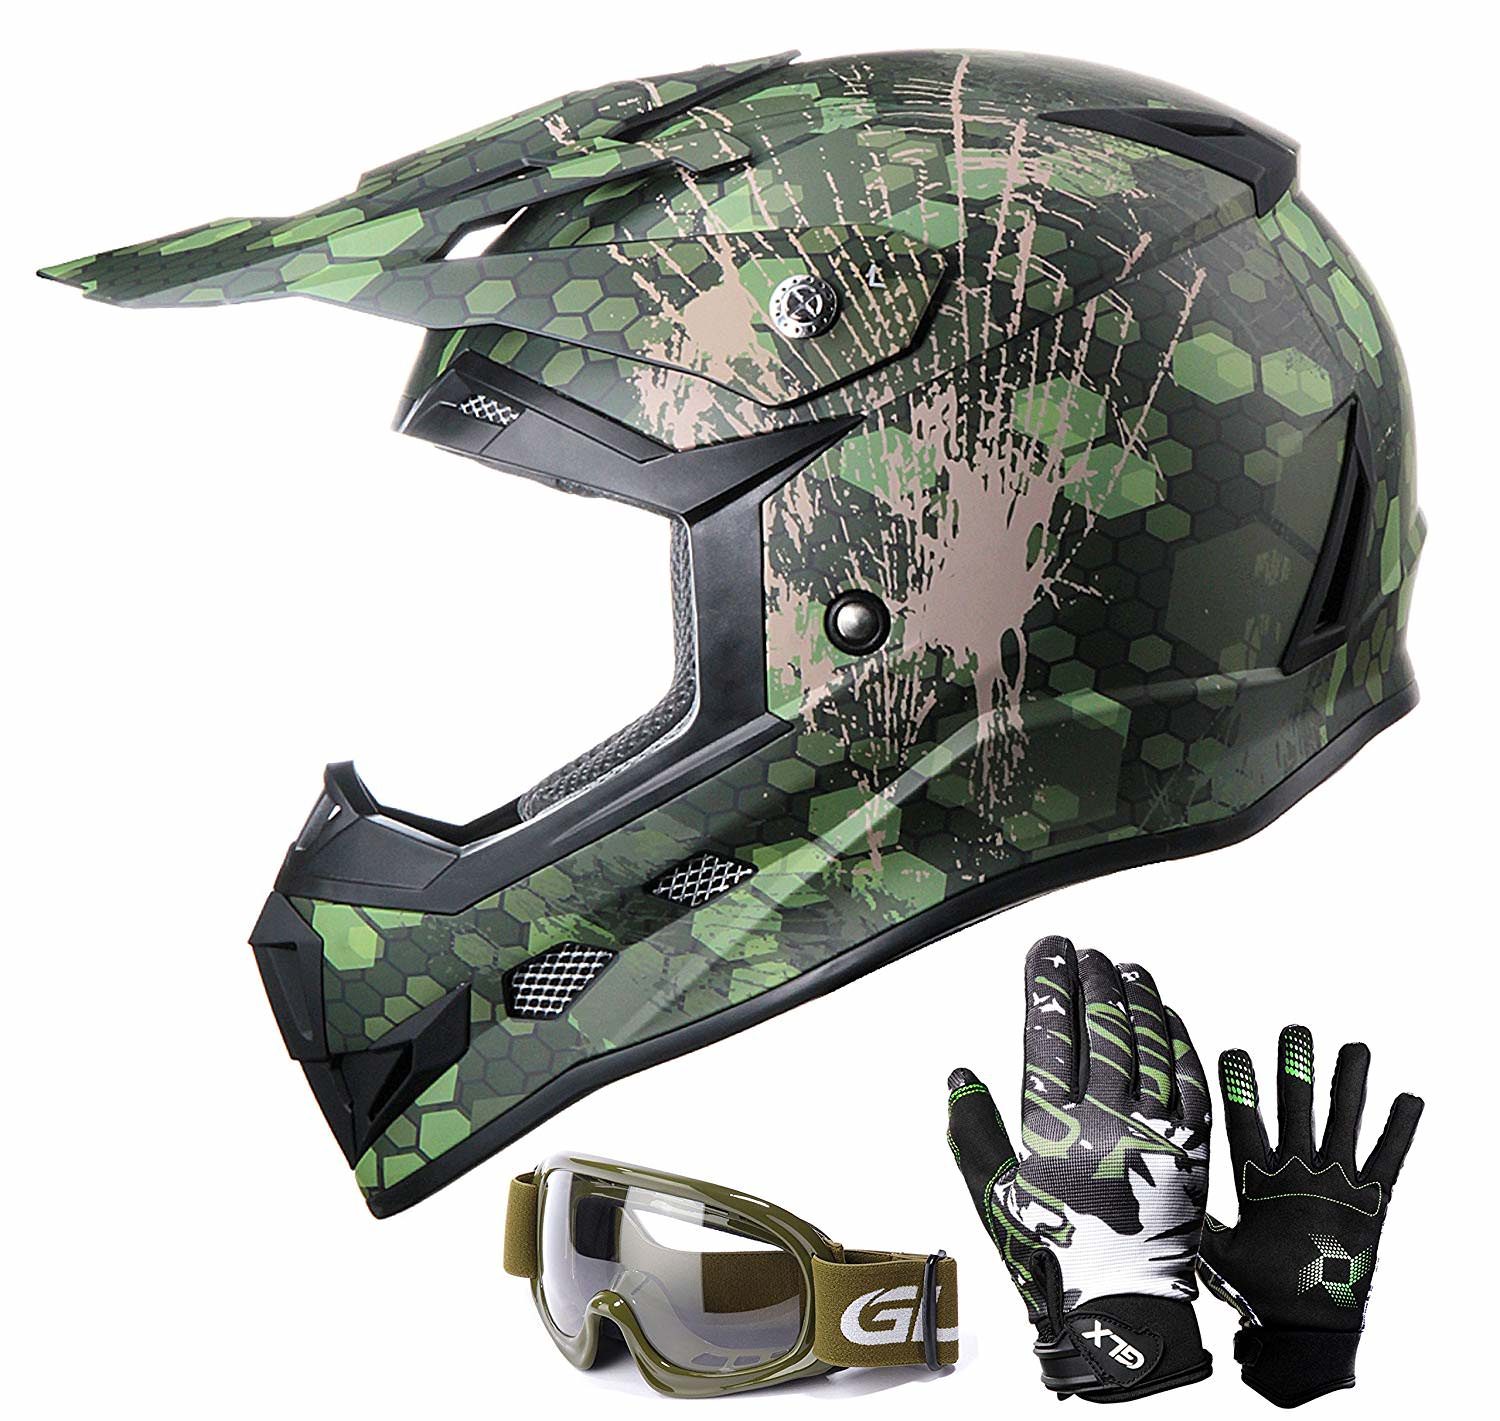 GLX Youth Kids Off Road Motocross ATV Dirt Bike Helmet [DOT] +Gloves+Goggles Color/Size Opt